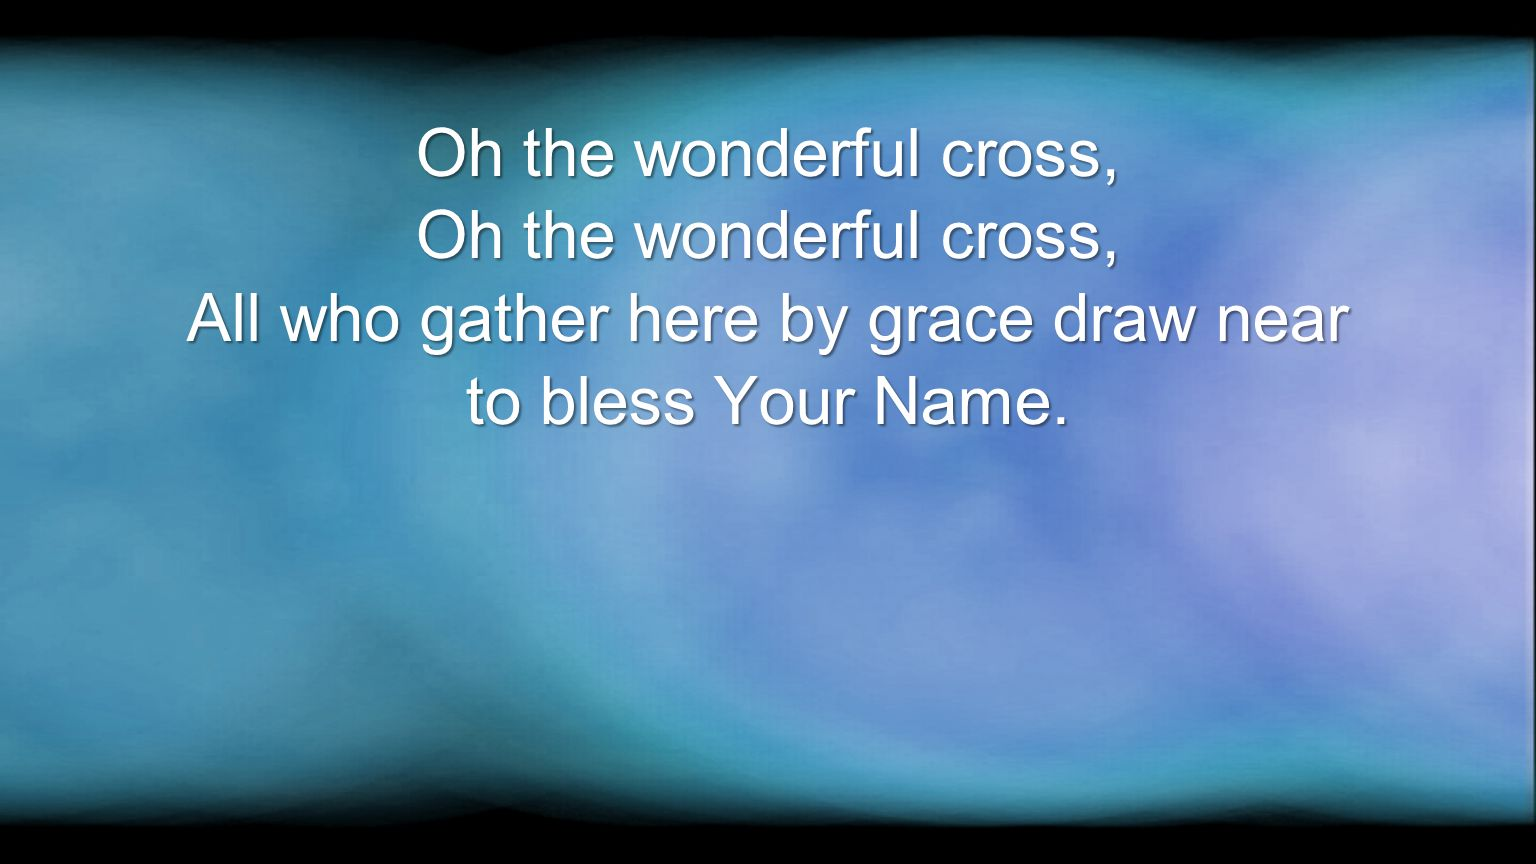 All who gather here by grace draw near